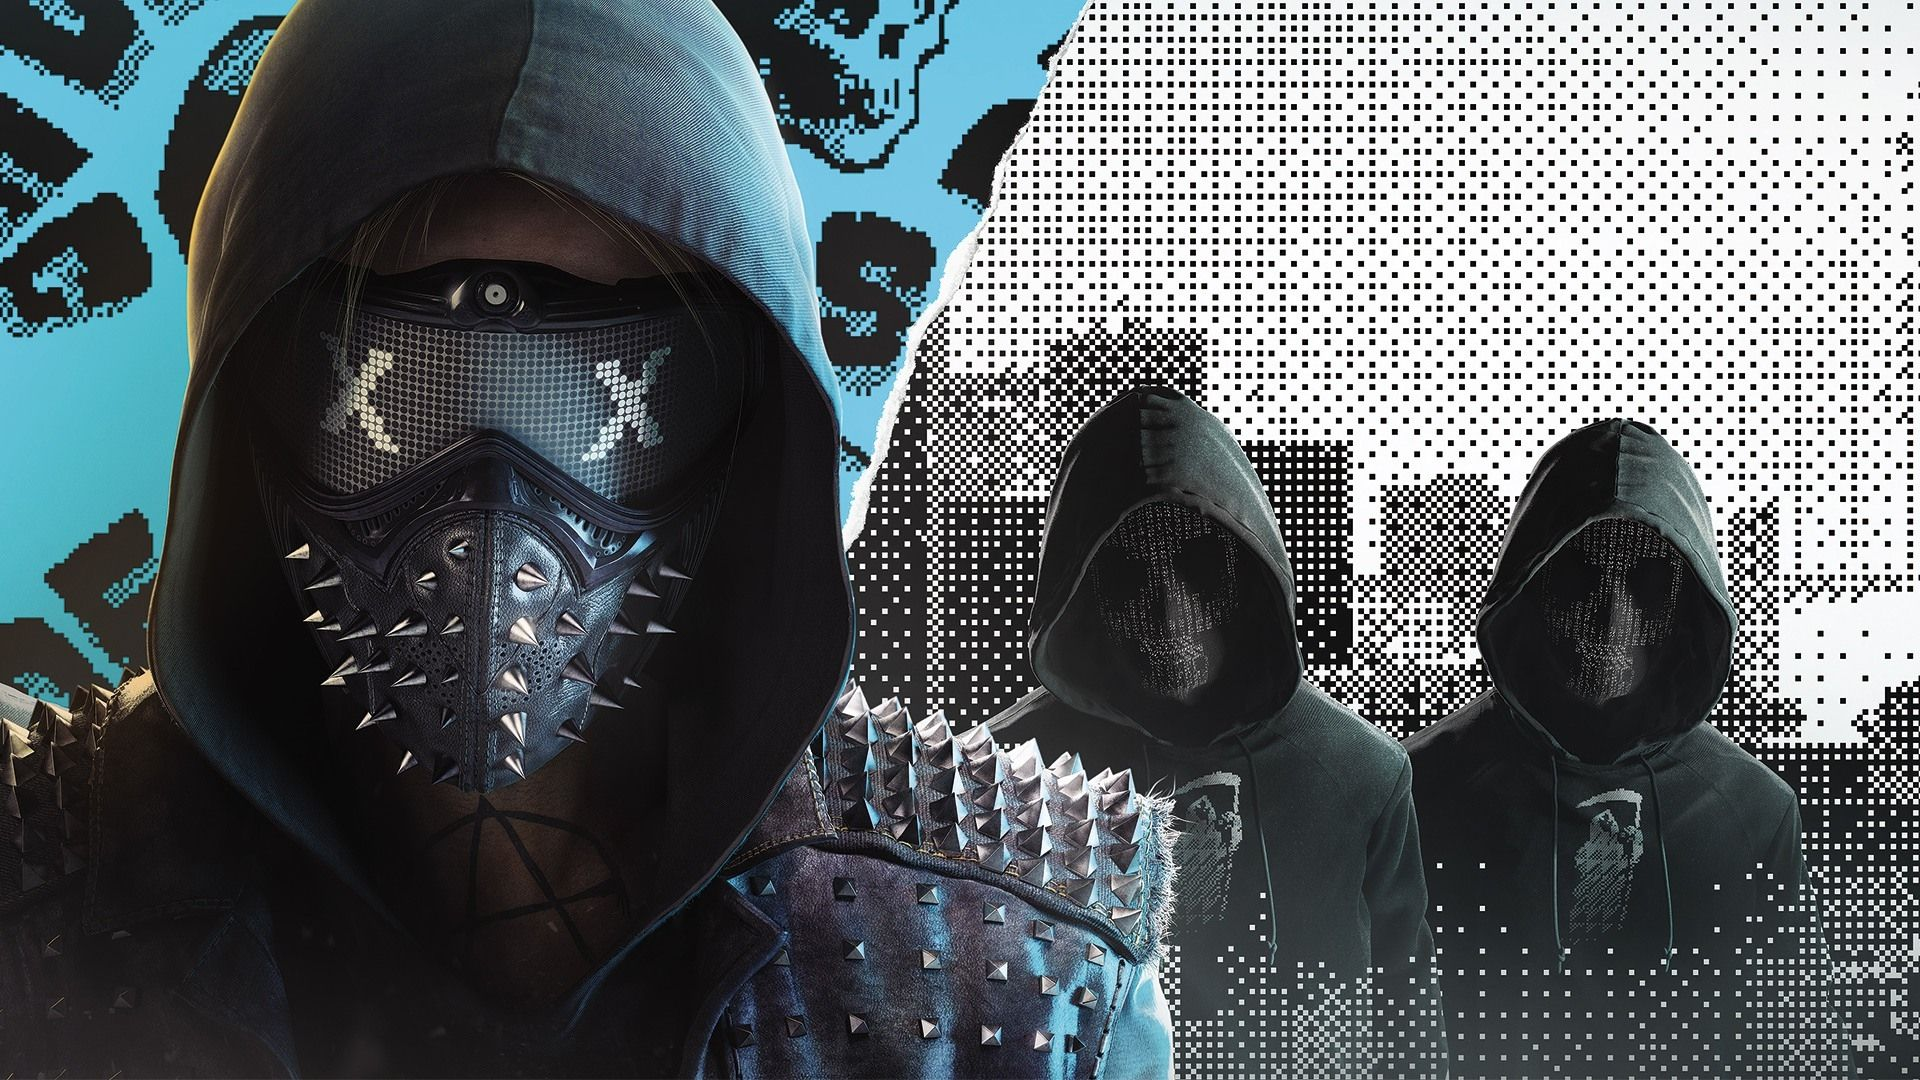 Vídeo Game Watch Dogs 2 Wrench (Watch Dogs) Papel De